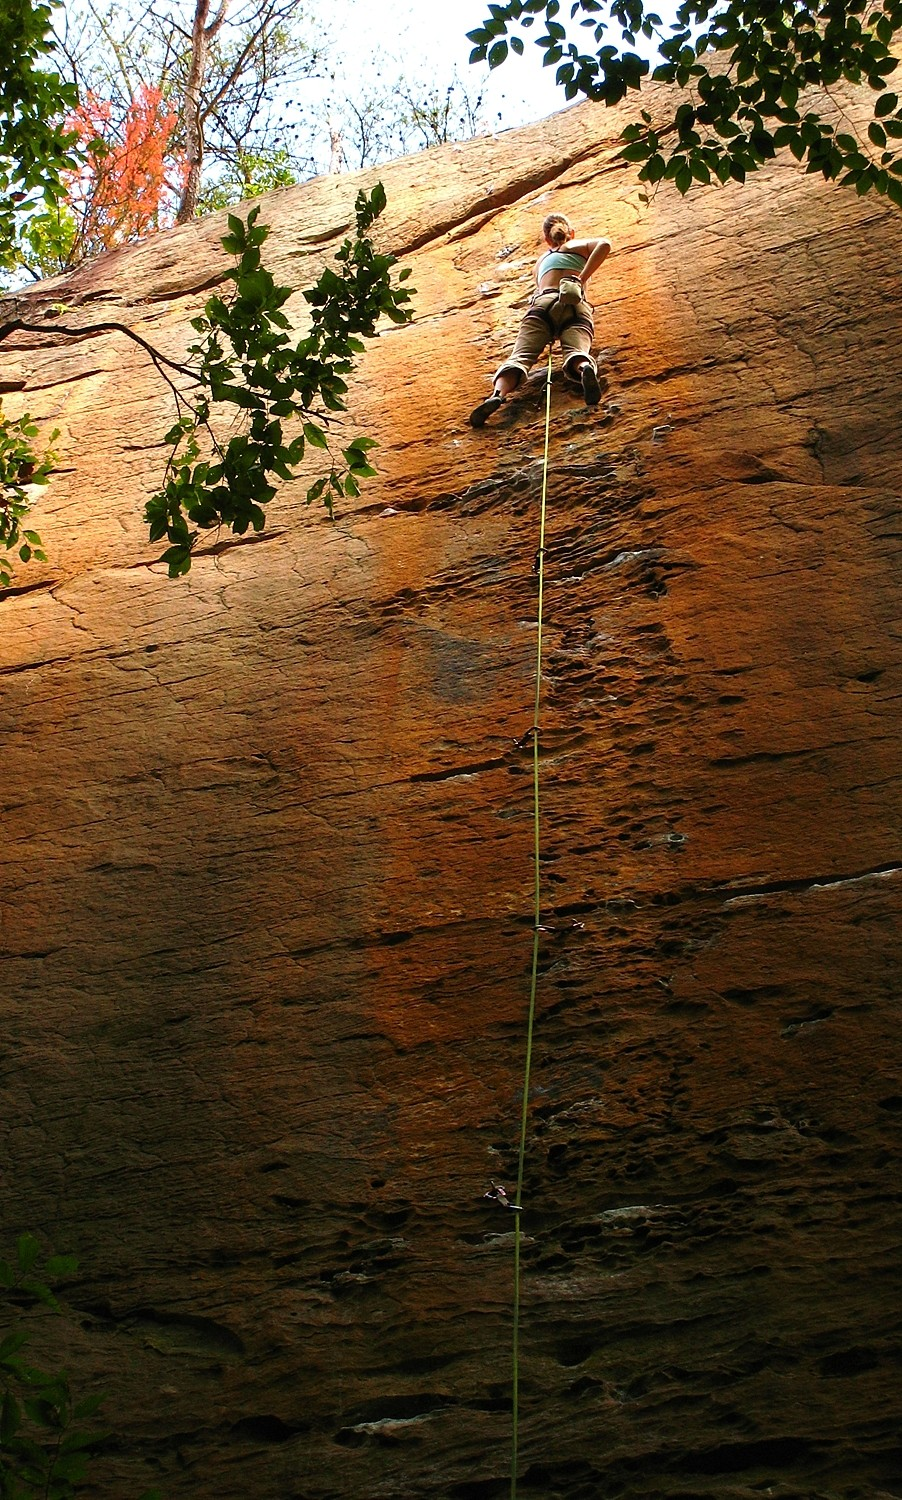 Orange Juice (5.12c), Funk-Rock City, Red River Gorge, USA